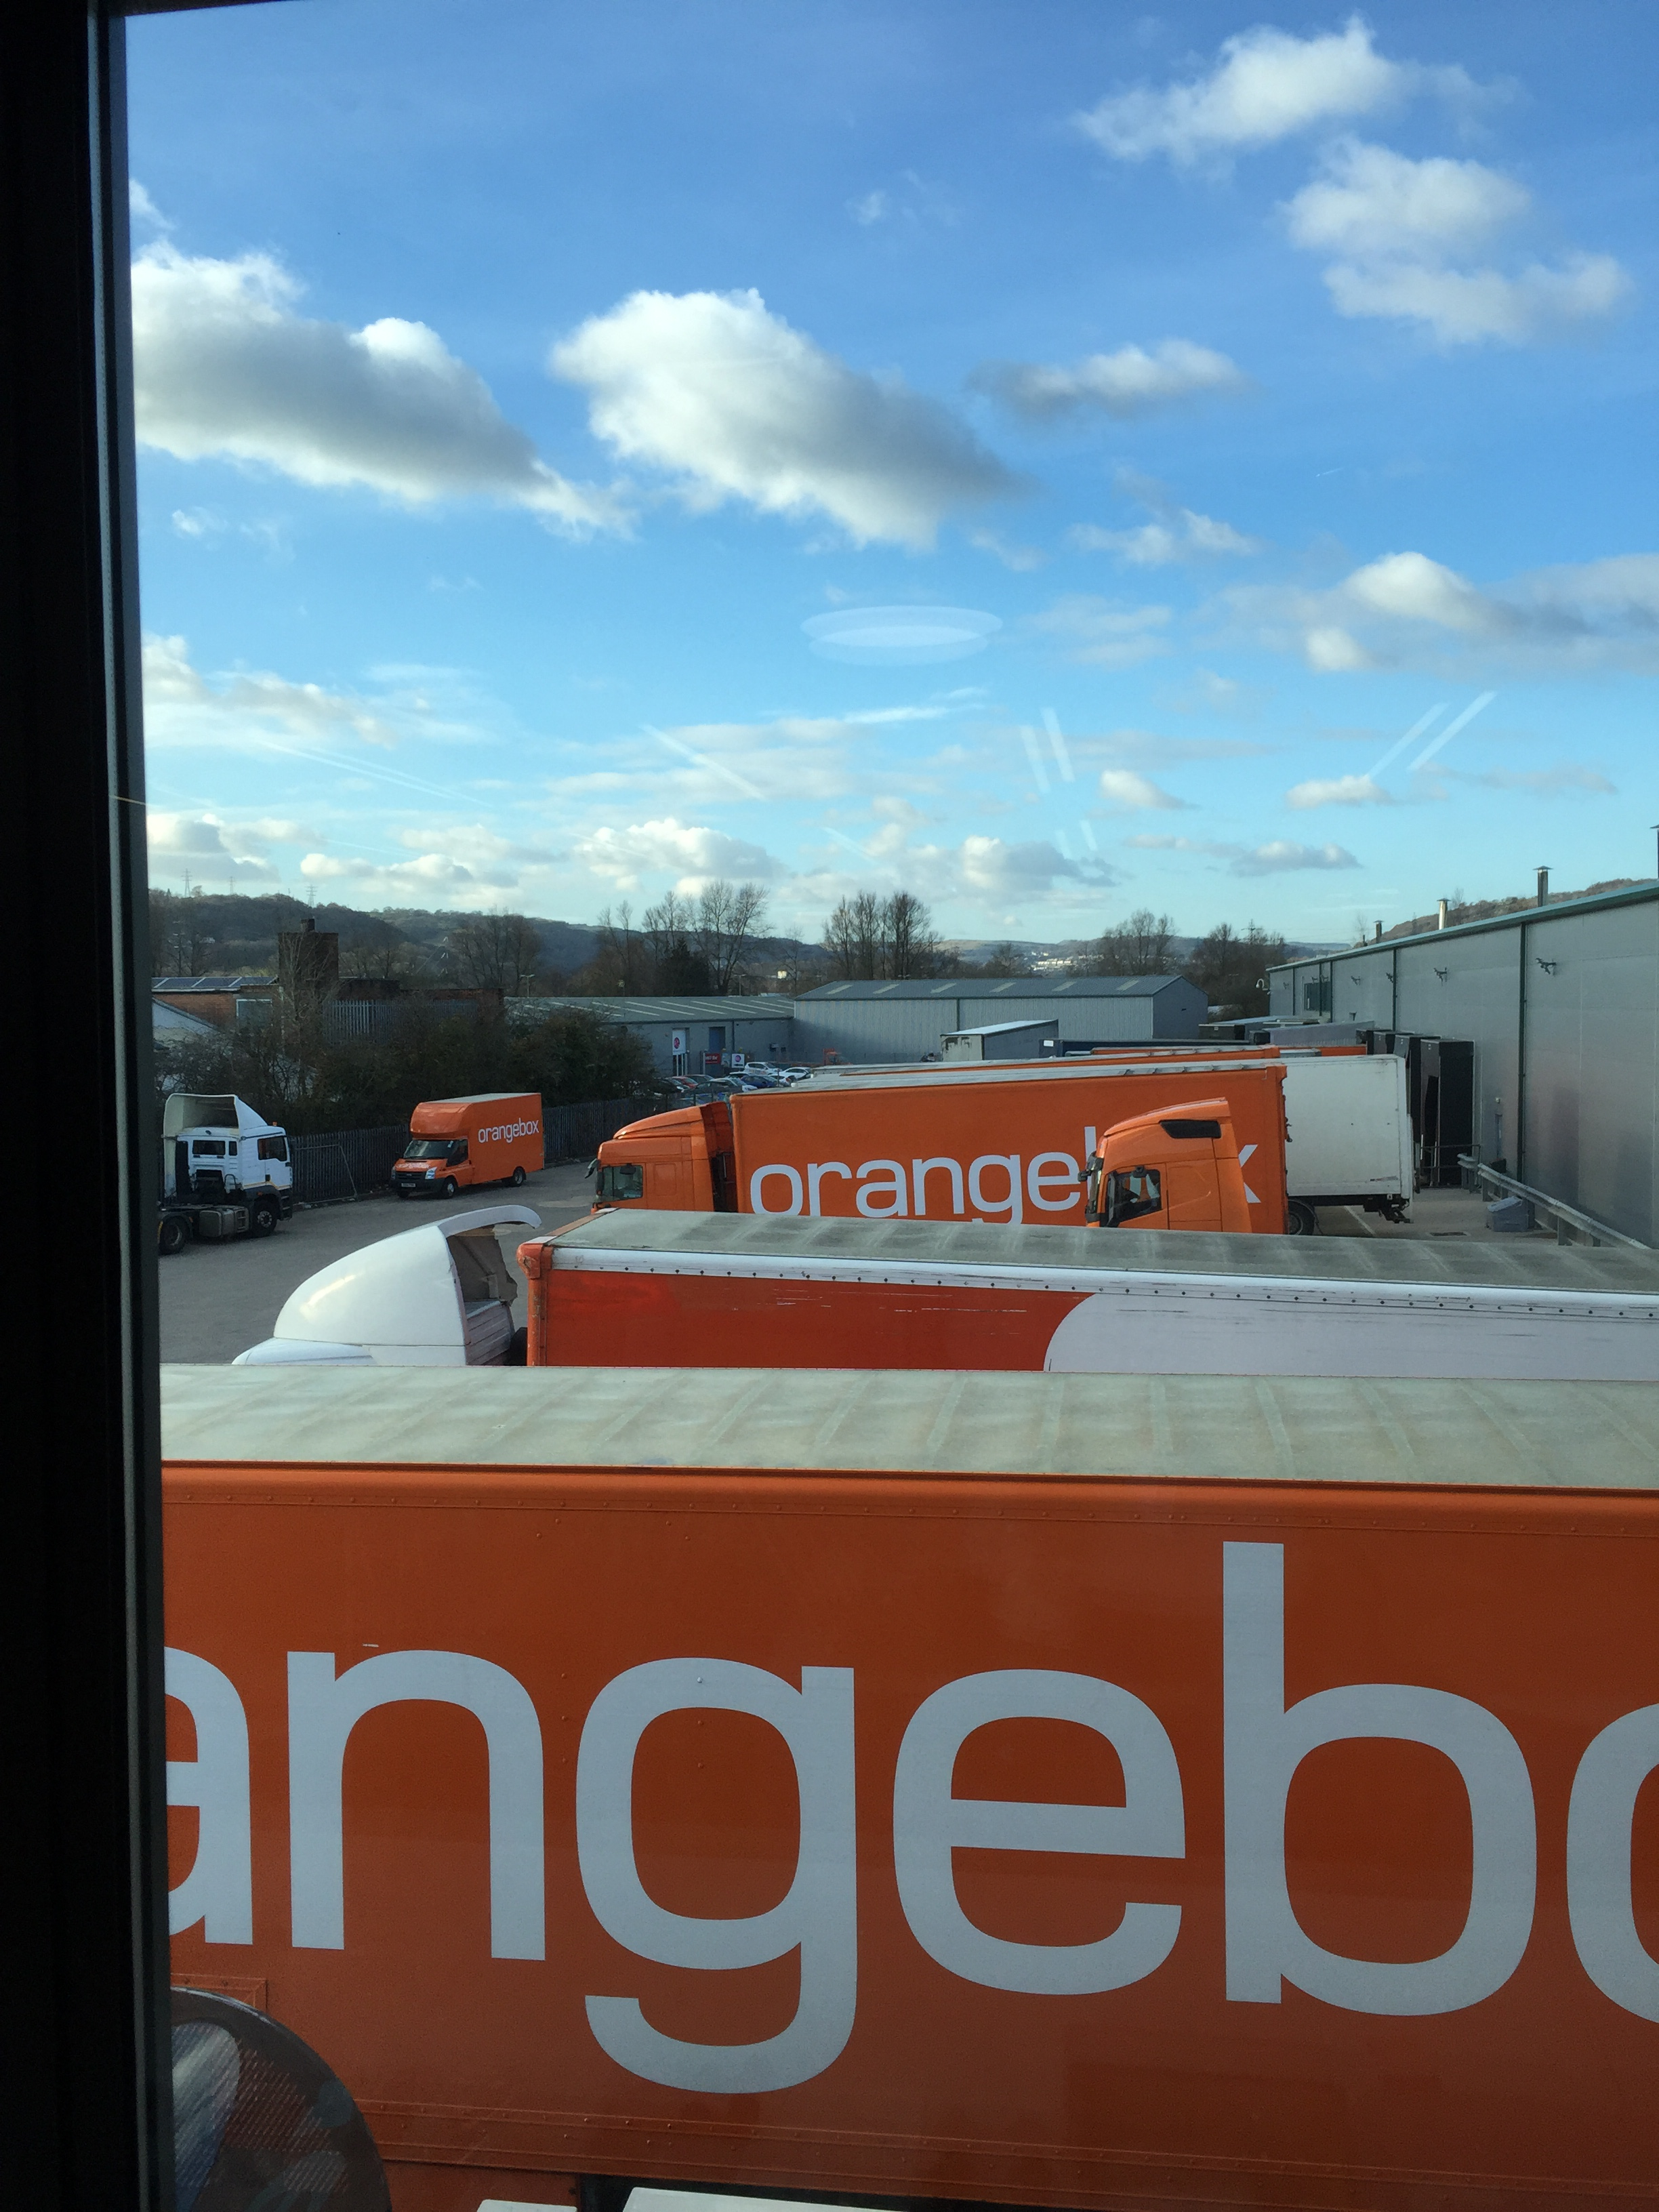 Orangebox Lorries